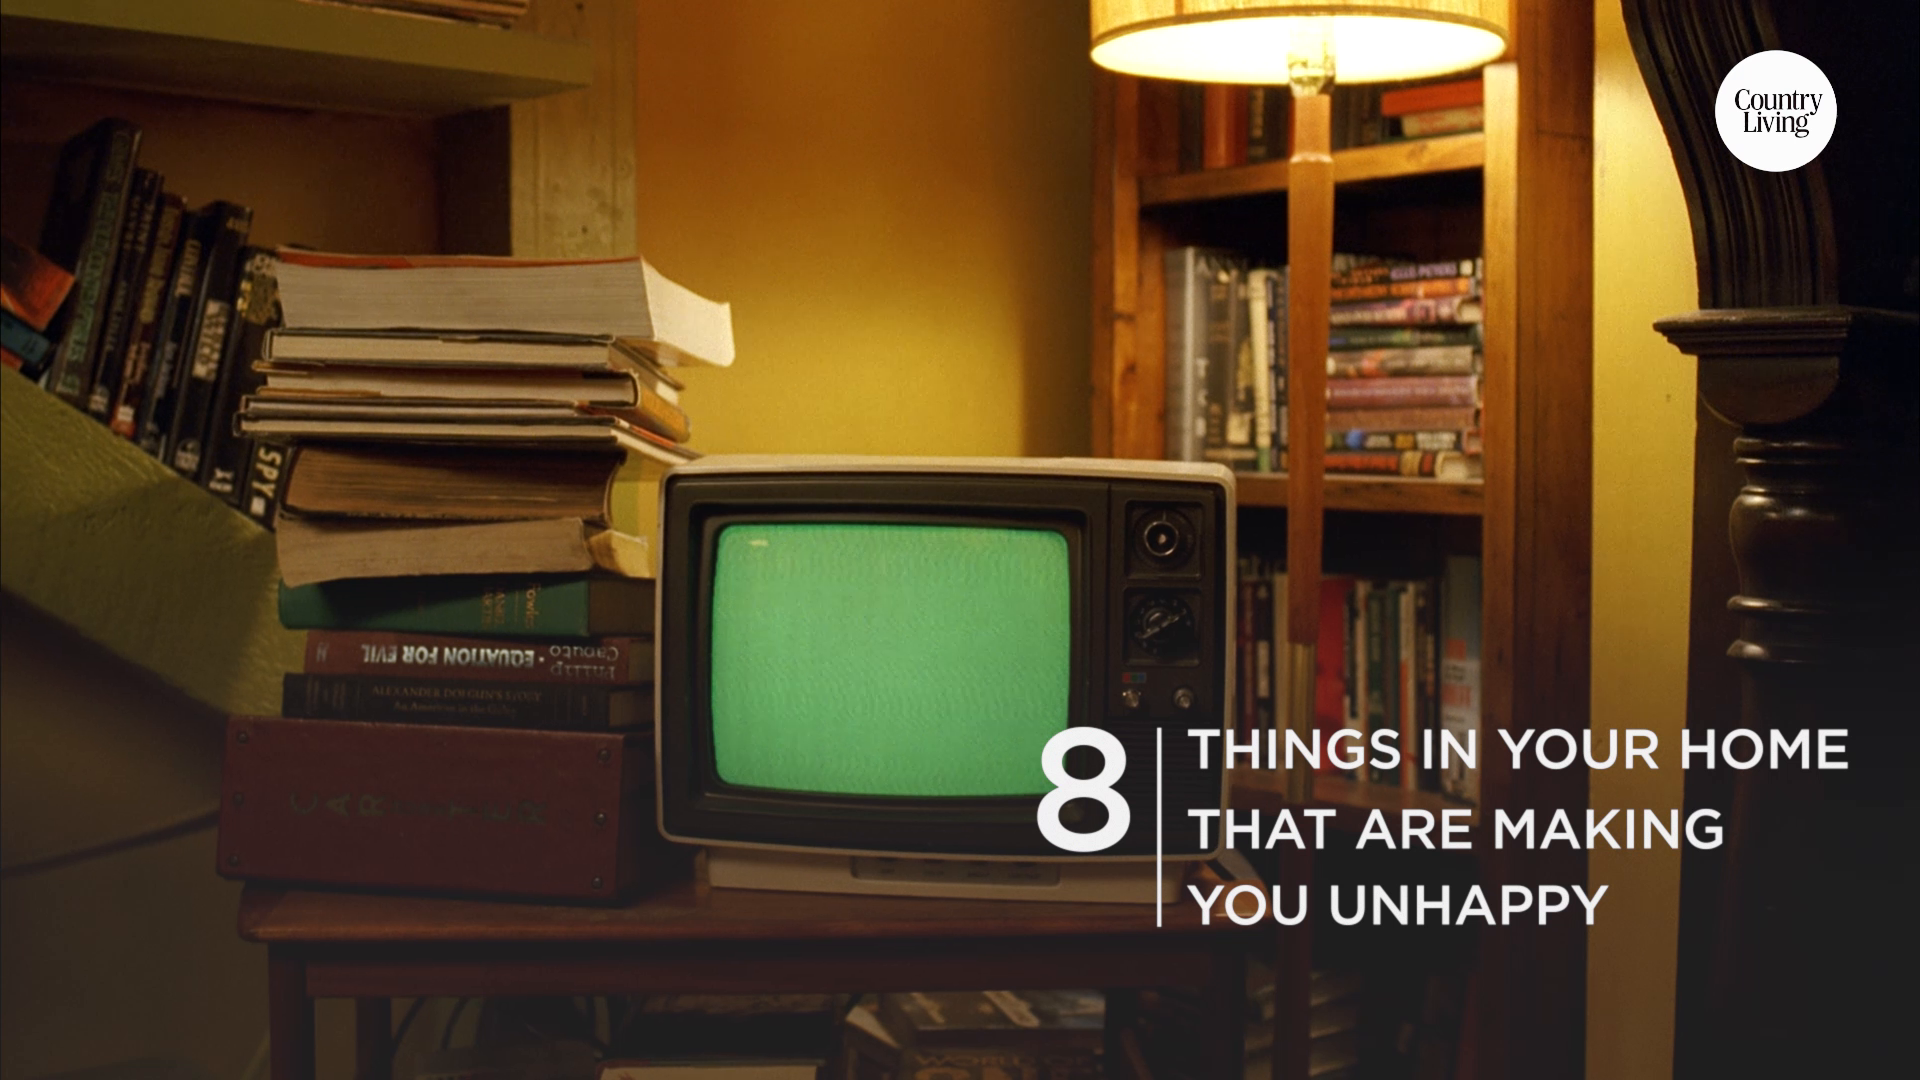 These 8 Things In Your Home Are Making You Unhappy